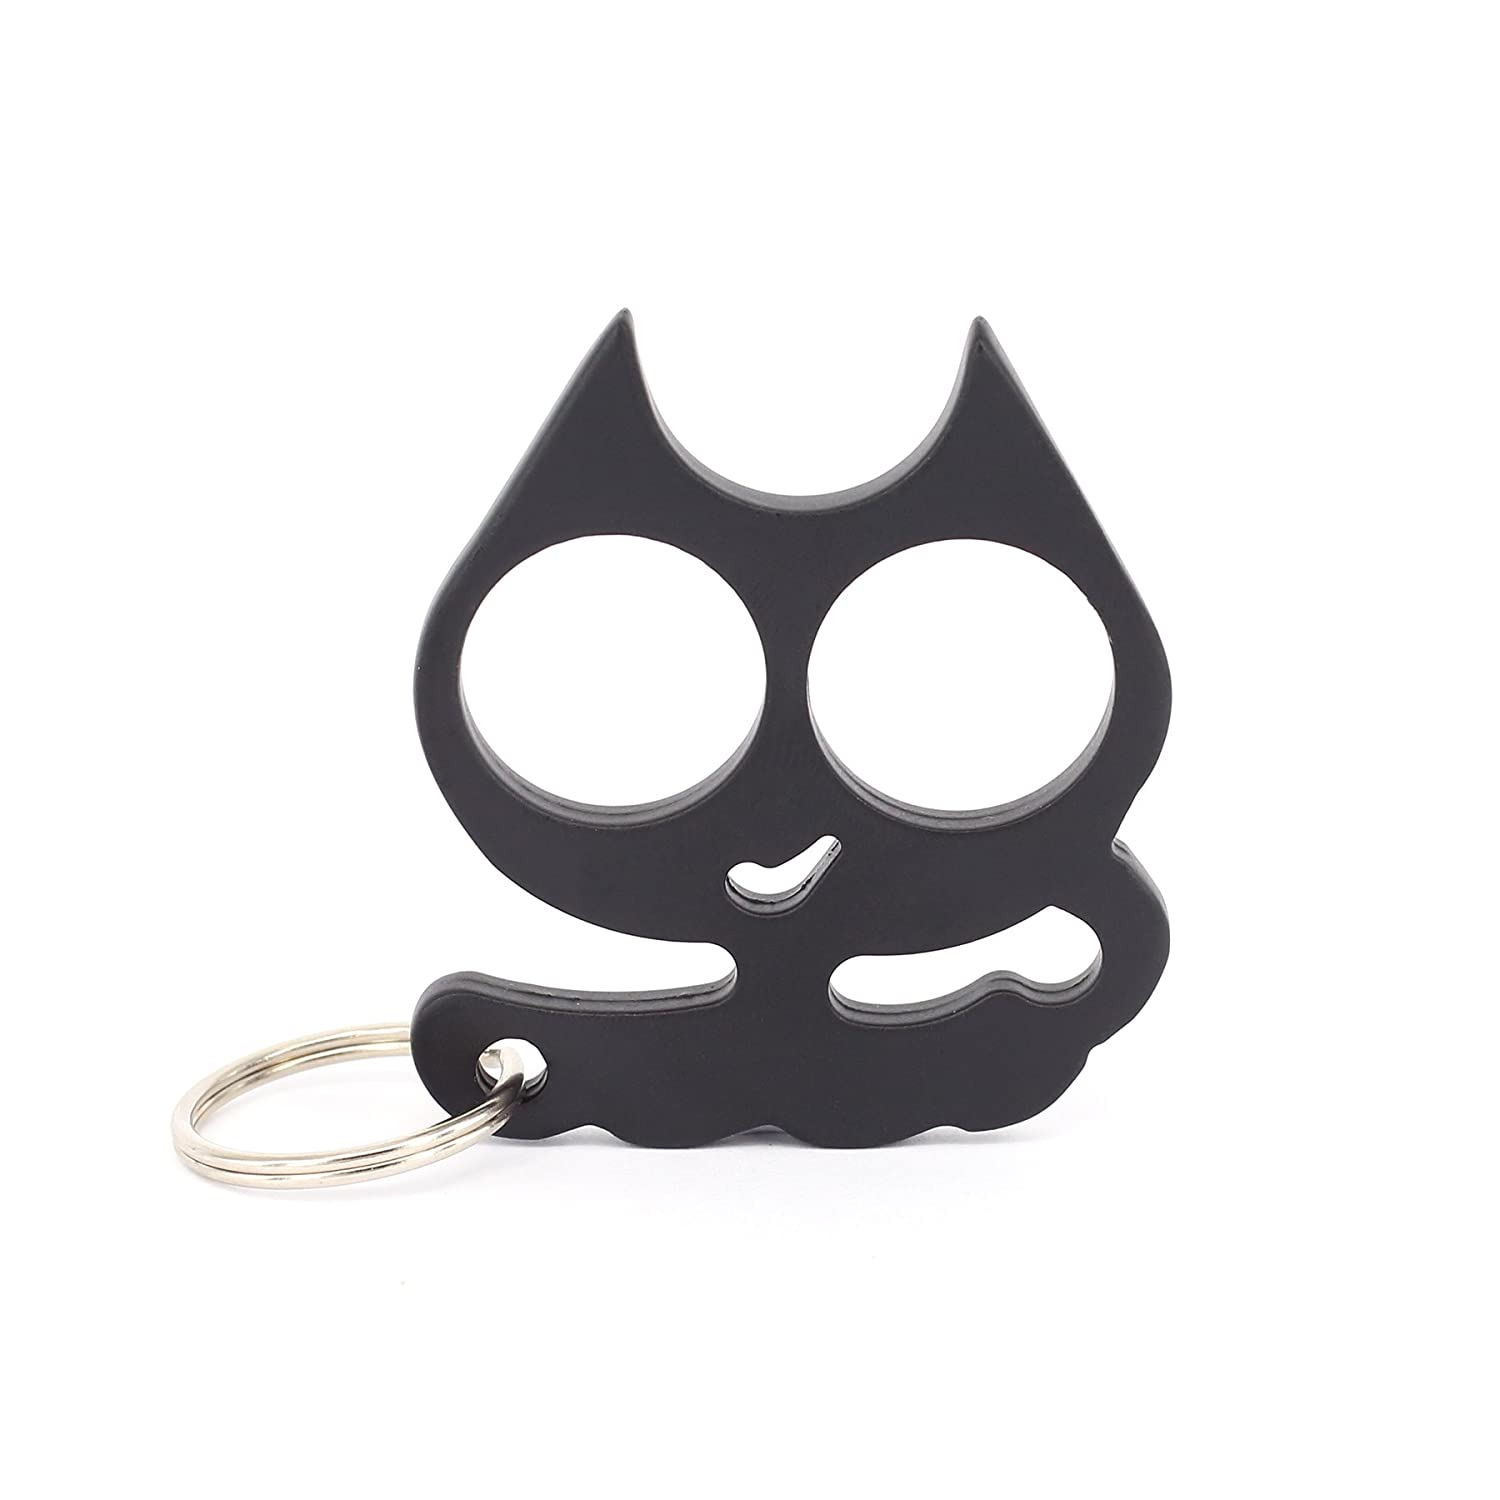 Prudance® Cartoon Cat Keychain Self Defense Emergency Survival Tool - Decorative Key Chain Doubles As a Weapon If You